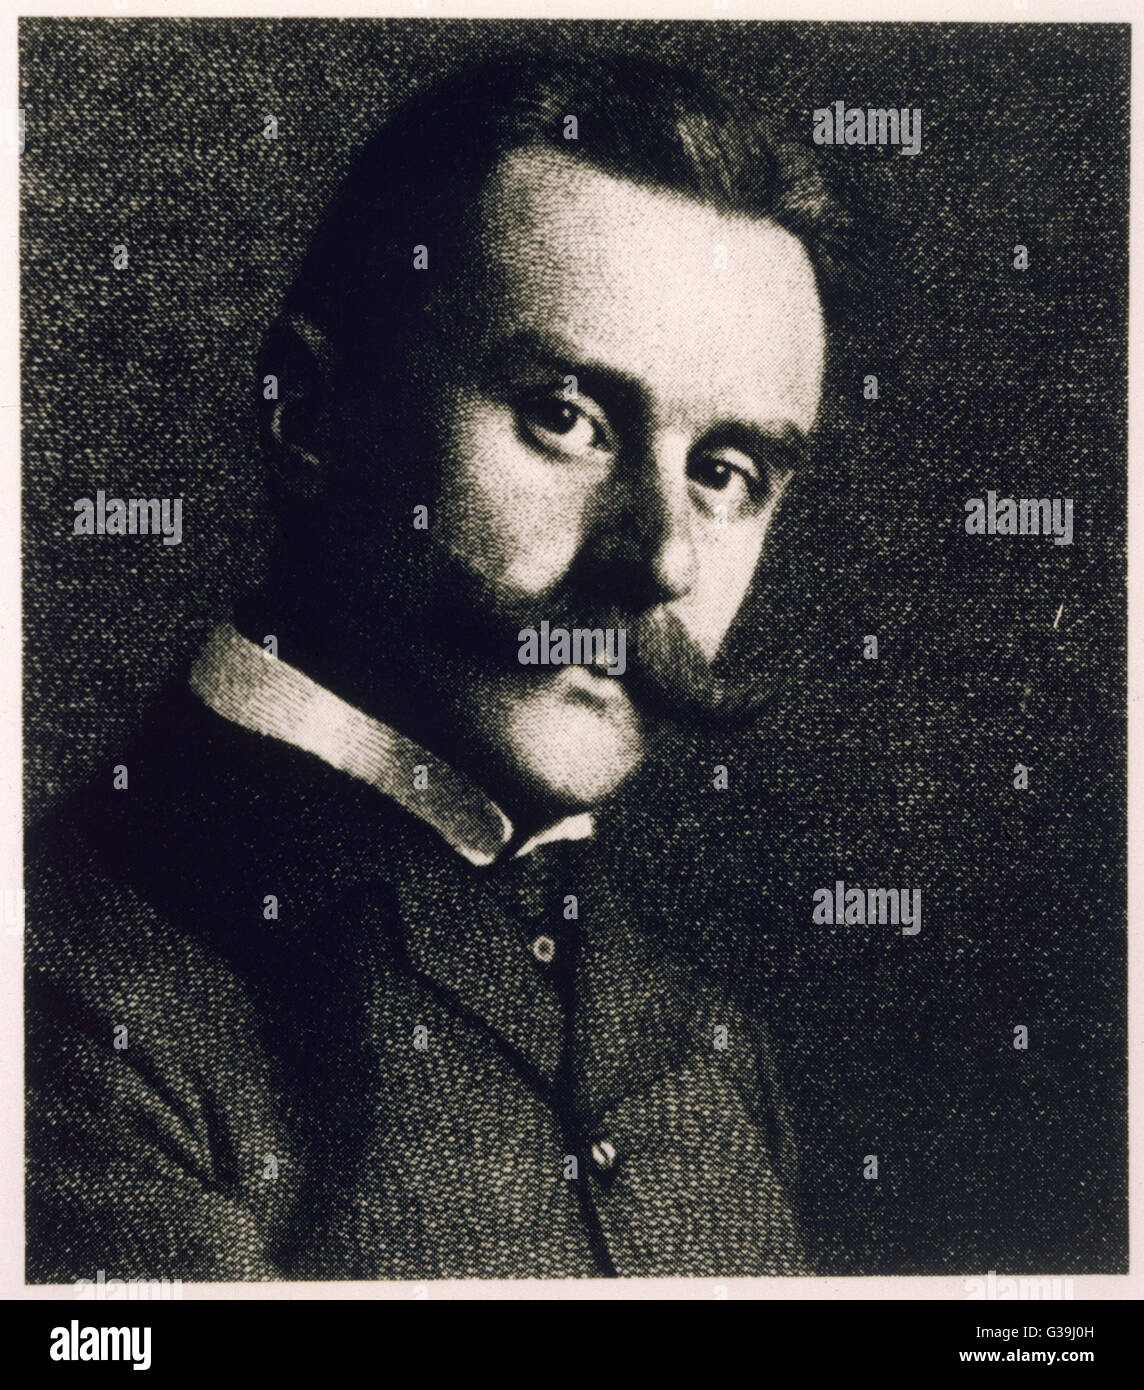 THOMAS MANN  German novelist        Date: 1875 - 1955 - Stock Image